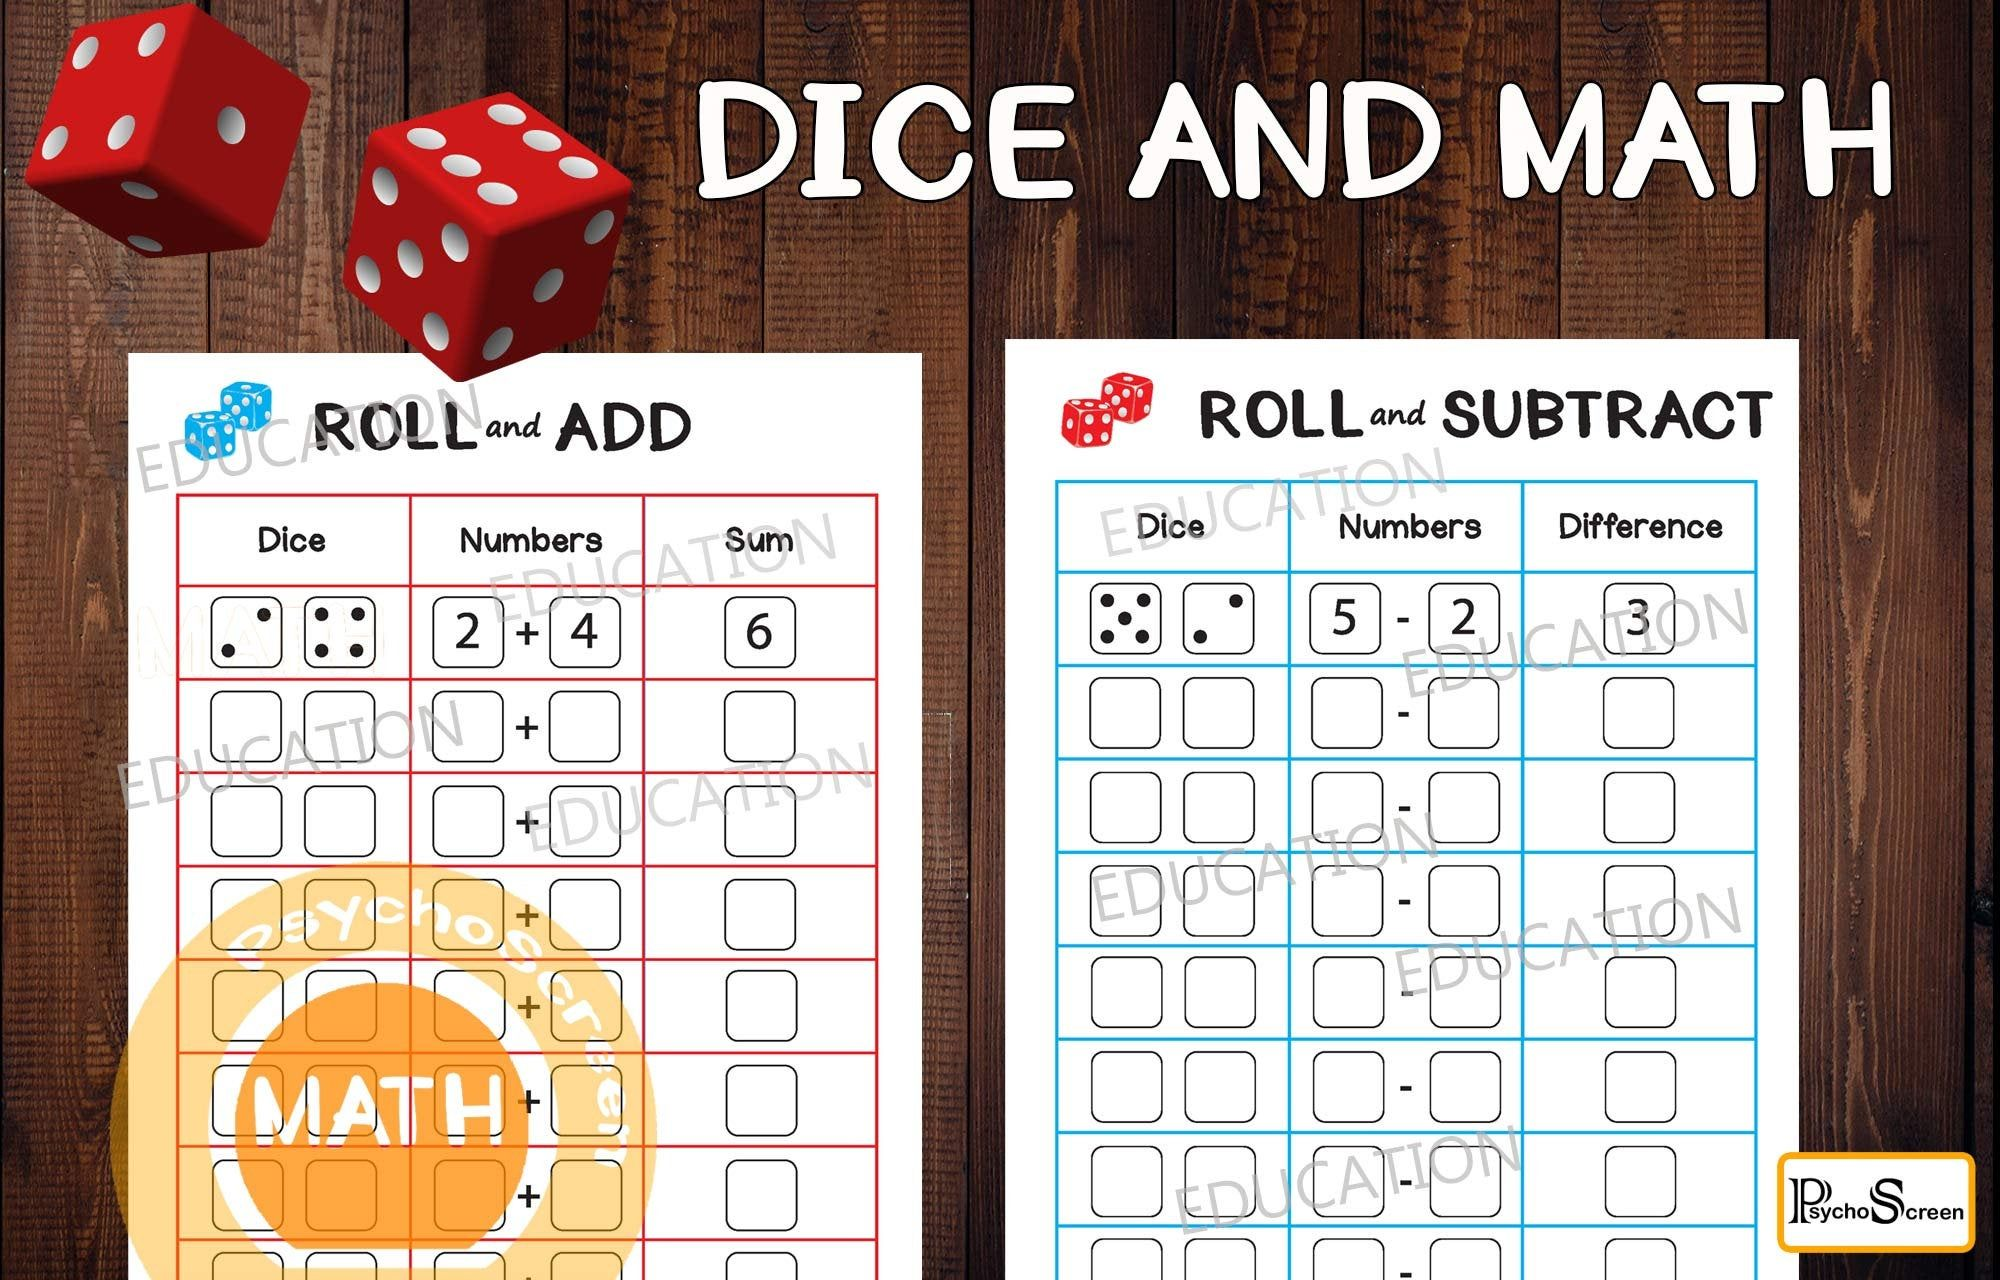 Math Game With Dice Roll And Add Roll And Subtract Etsy In 2021 Math Subtraction Montessori Materials Math war addition and subtraction game